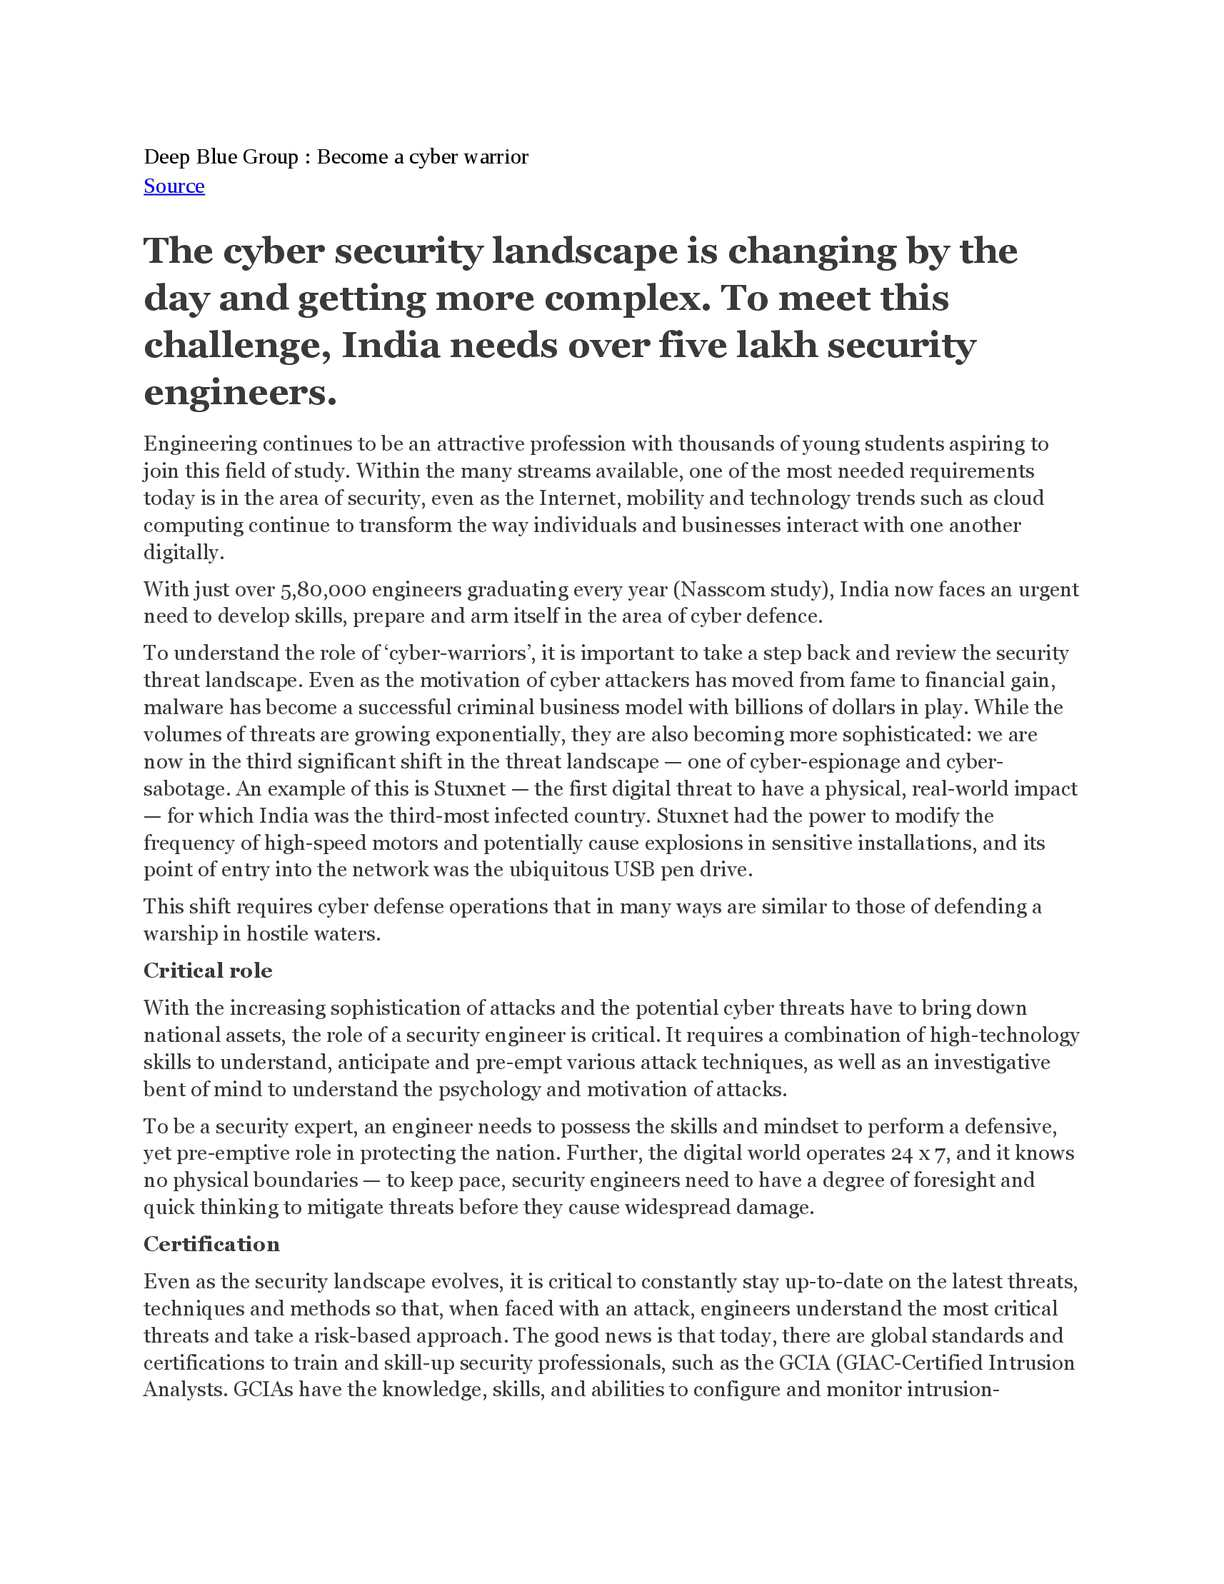 cyber security in india essay